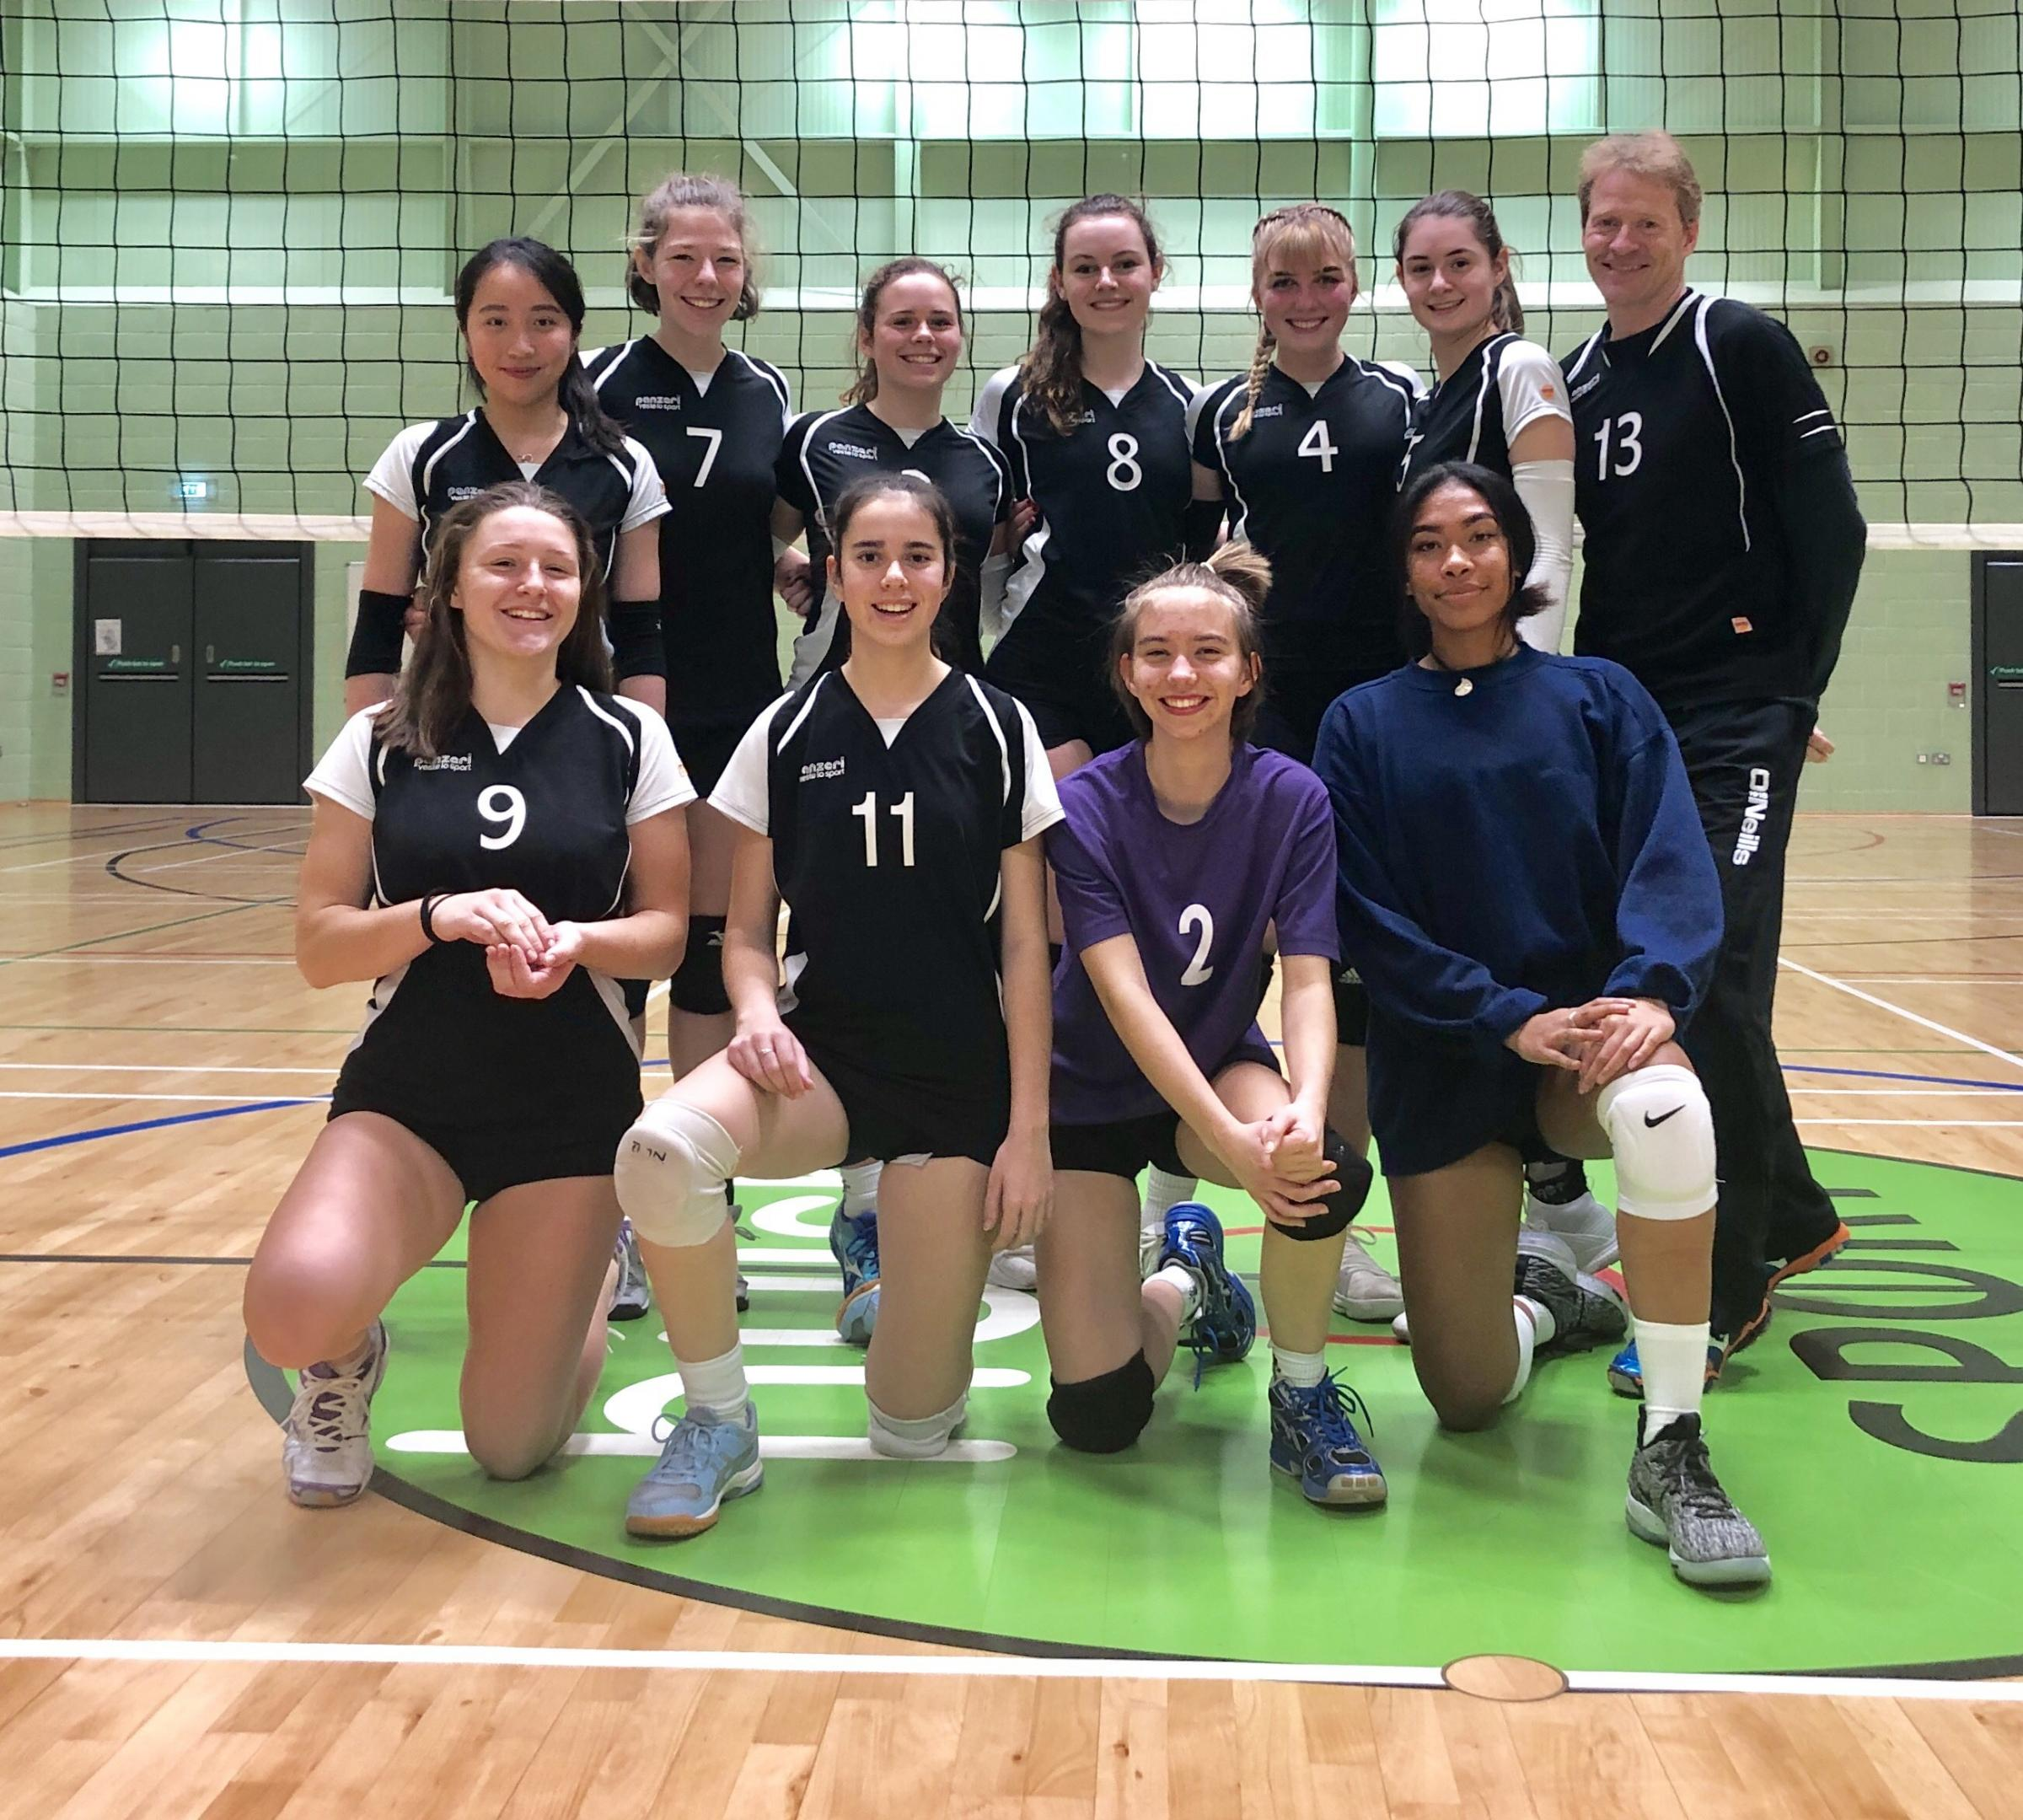 SUCCESS: Pictured from left, back row - Natalie Chan, Bethan Bailey, Kaja Jankowska, Georgia McGovern, Catherine Tolley, Holly Lovell-Fox, Jurek Jankowski (coach); front row - Mischa Jankowska, Amy Hart, Maddie Booker, Tejah Mossman.